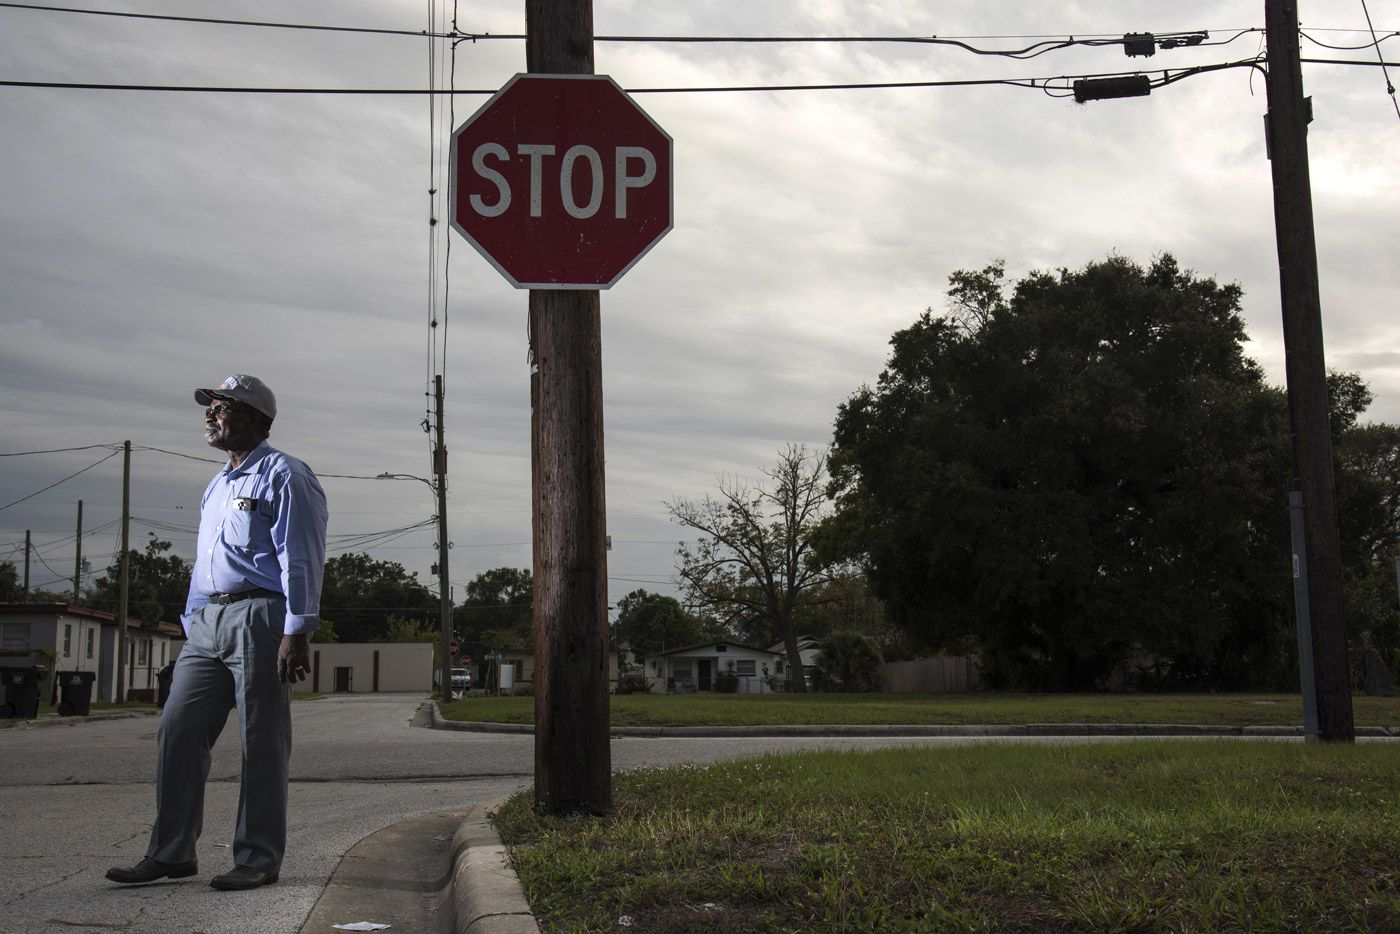 Eddie Walker, 65, is now the pastor of a small storefront church in Orlando, Fla. Photo: Melissa Lyttle for The Intercept